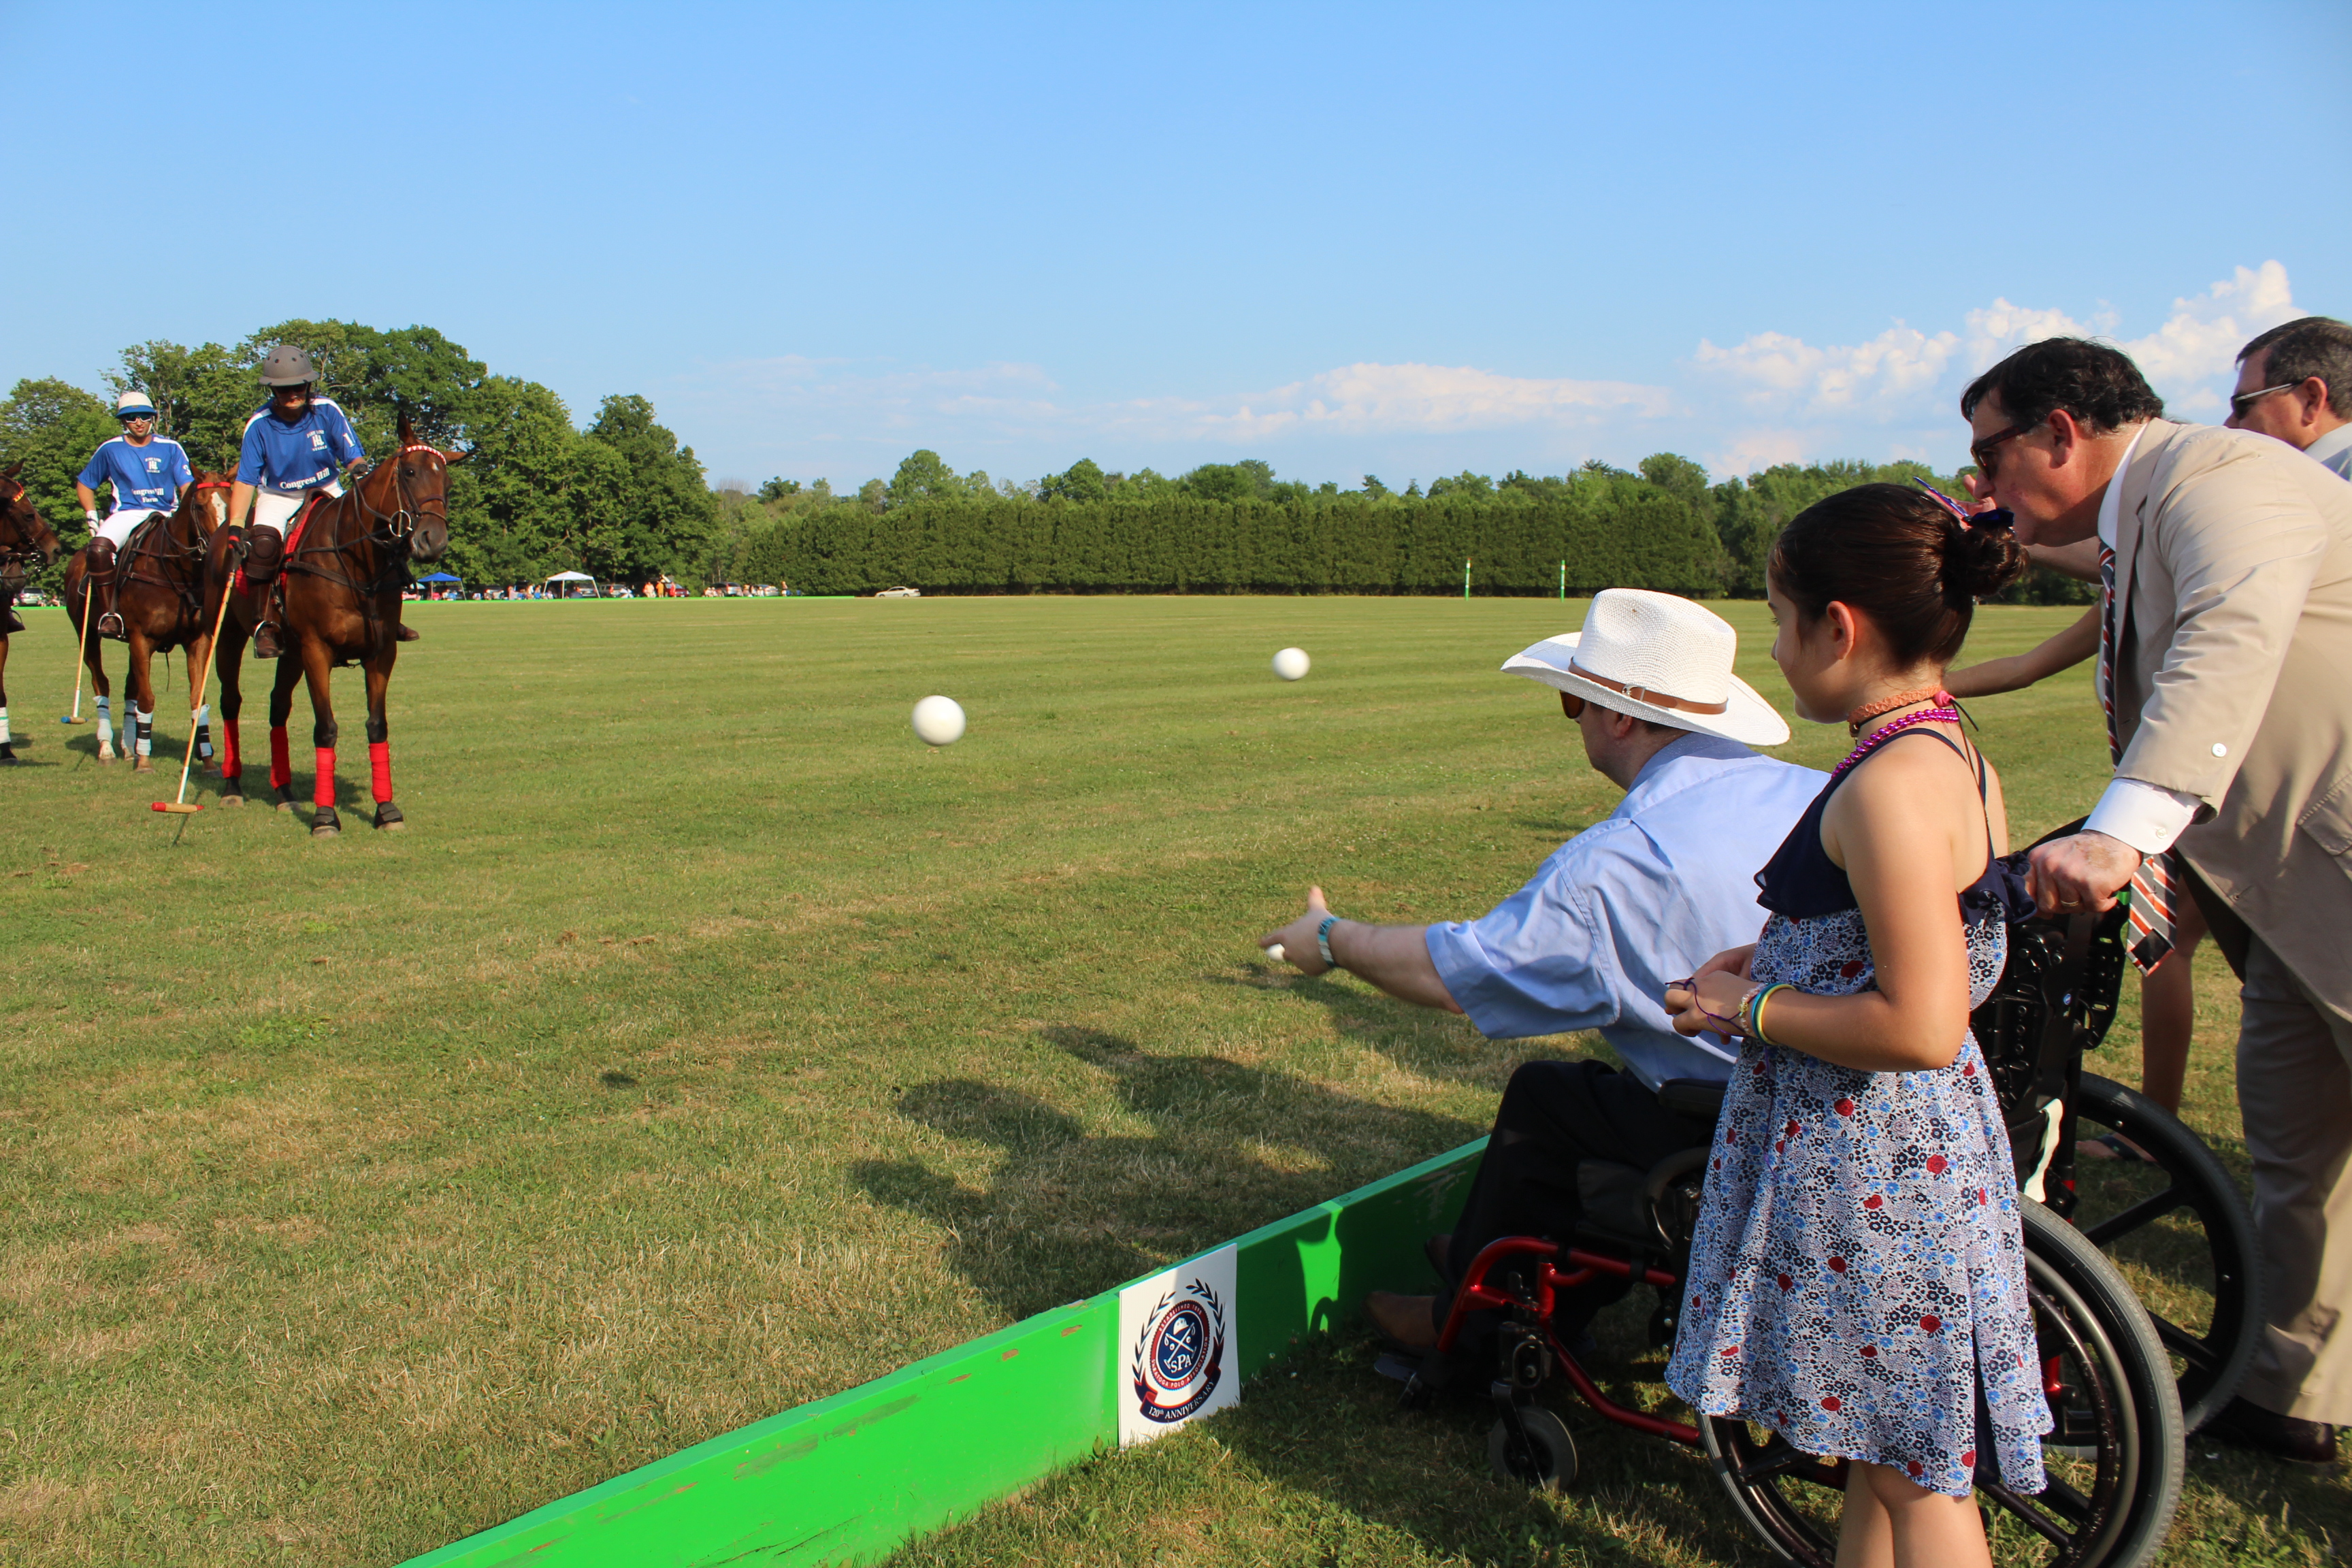 Man in wheelchair throwing first ball for Polo at the Saratoga Dog & Pony Show to benefit AIM Services, Inc.